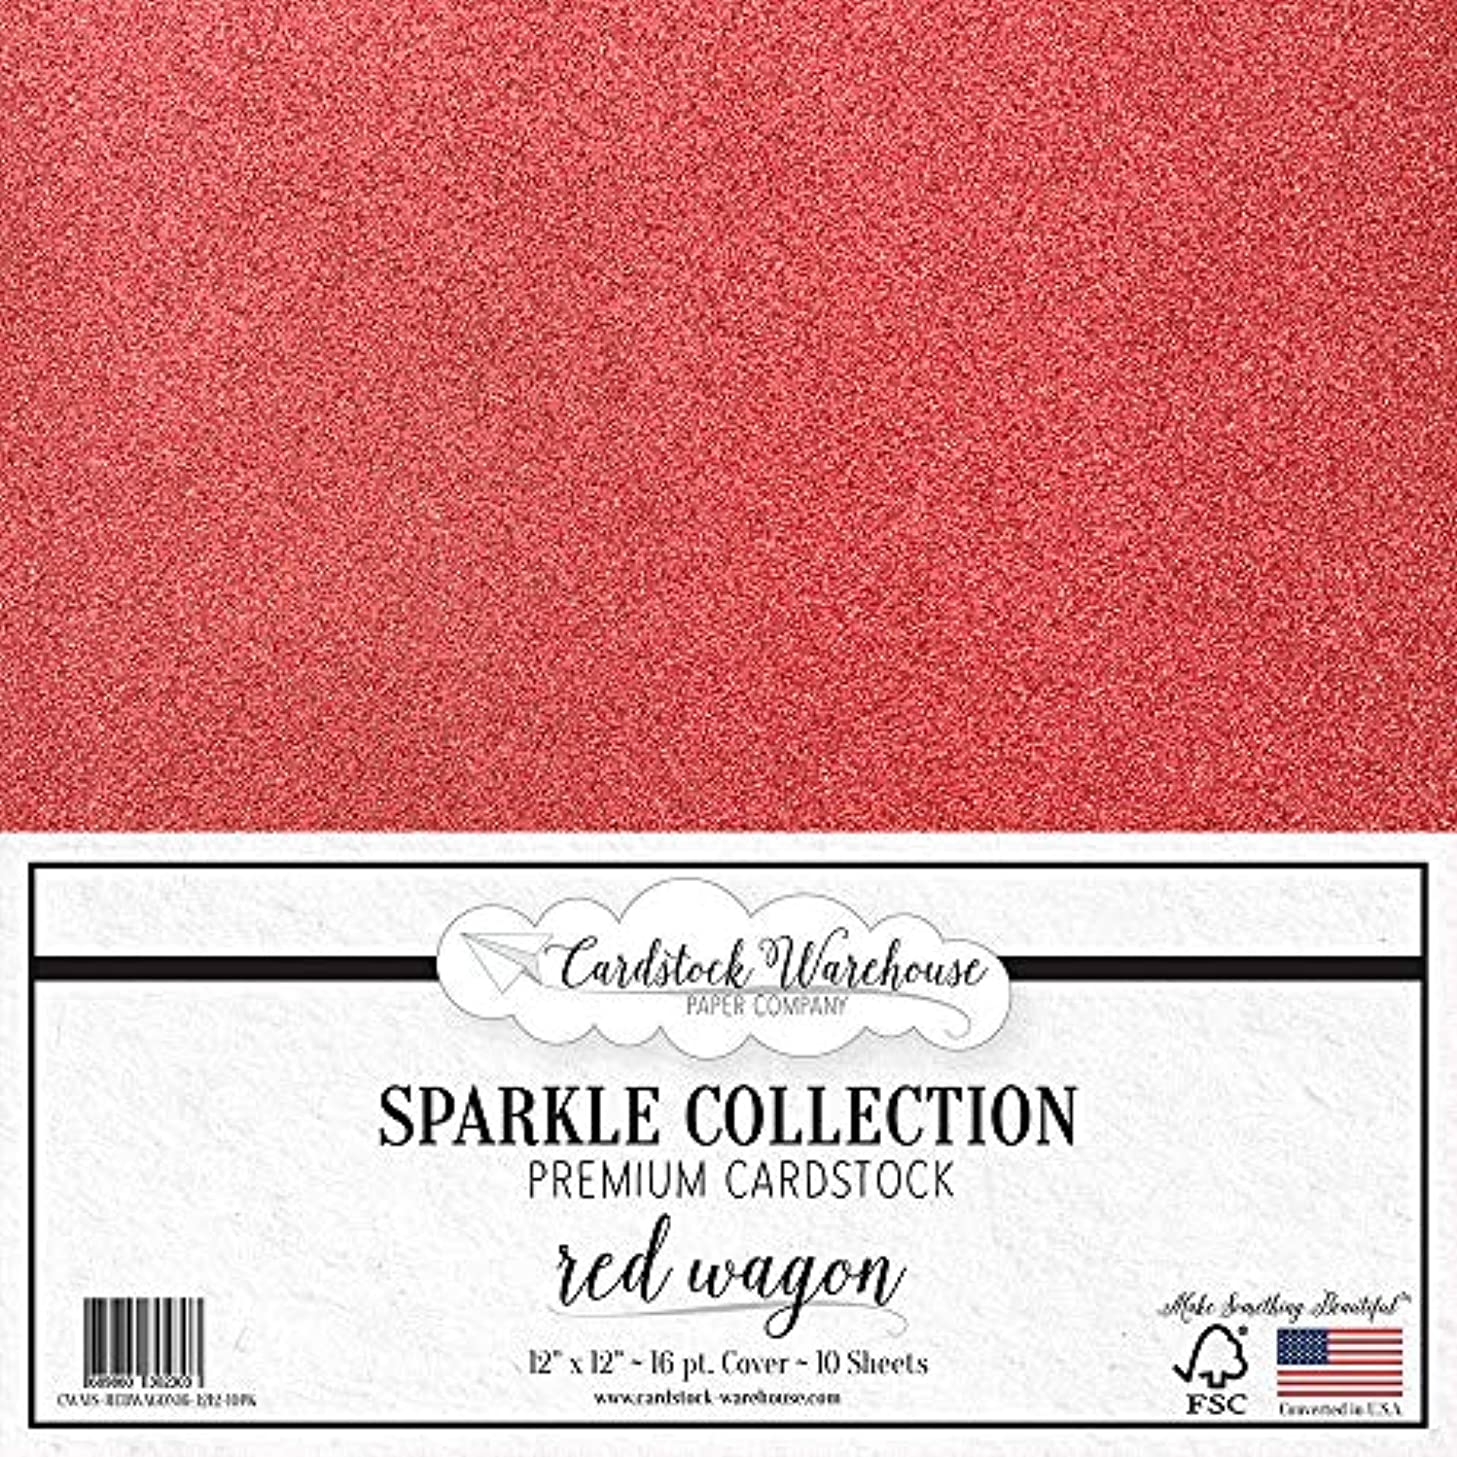 MirriSparkle Red Wagon Glitter Cardstock Paper 12